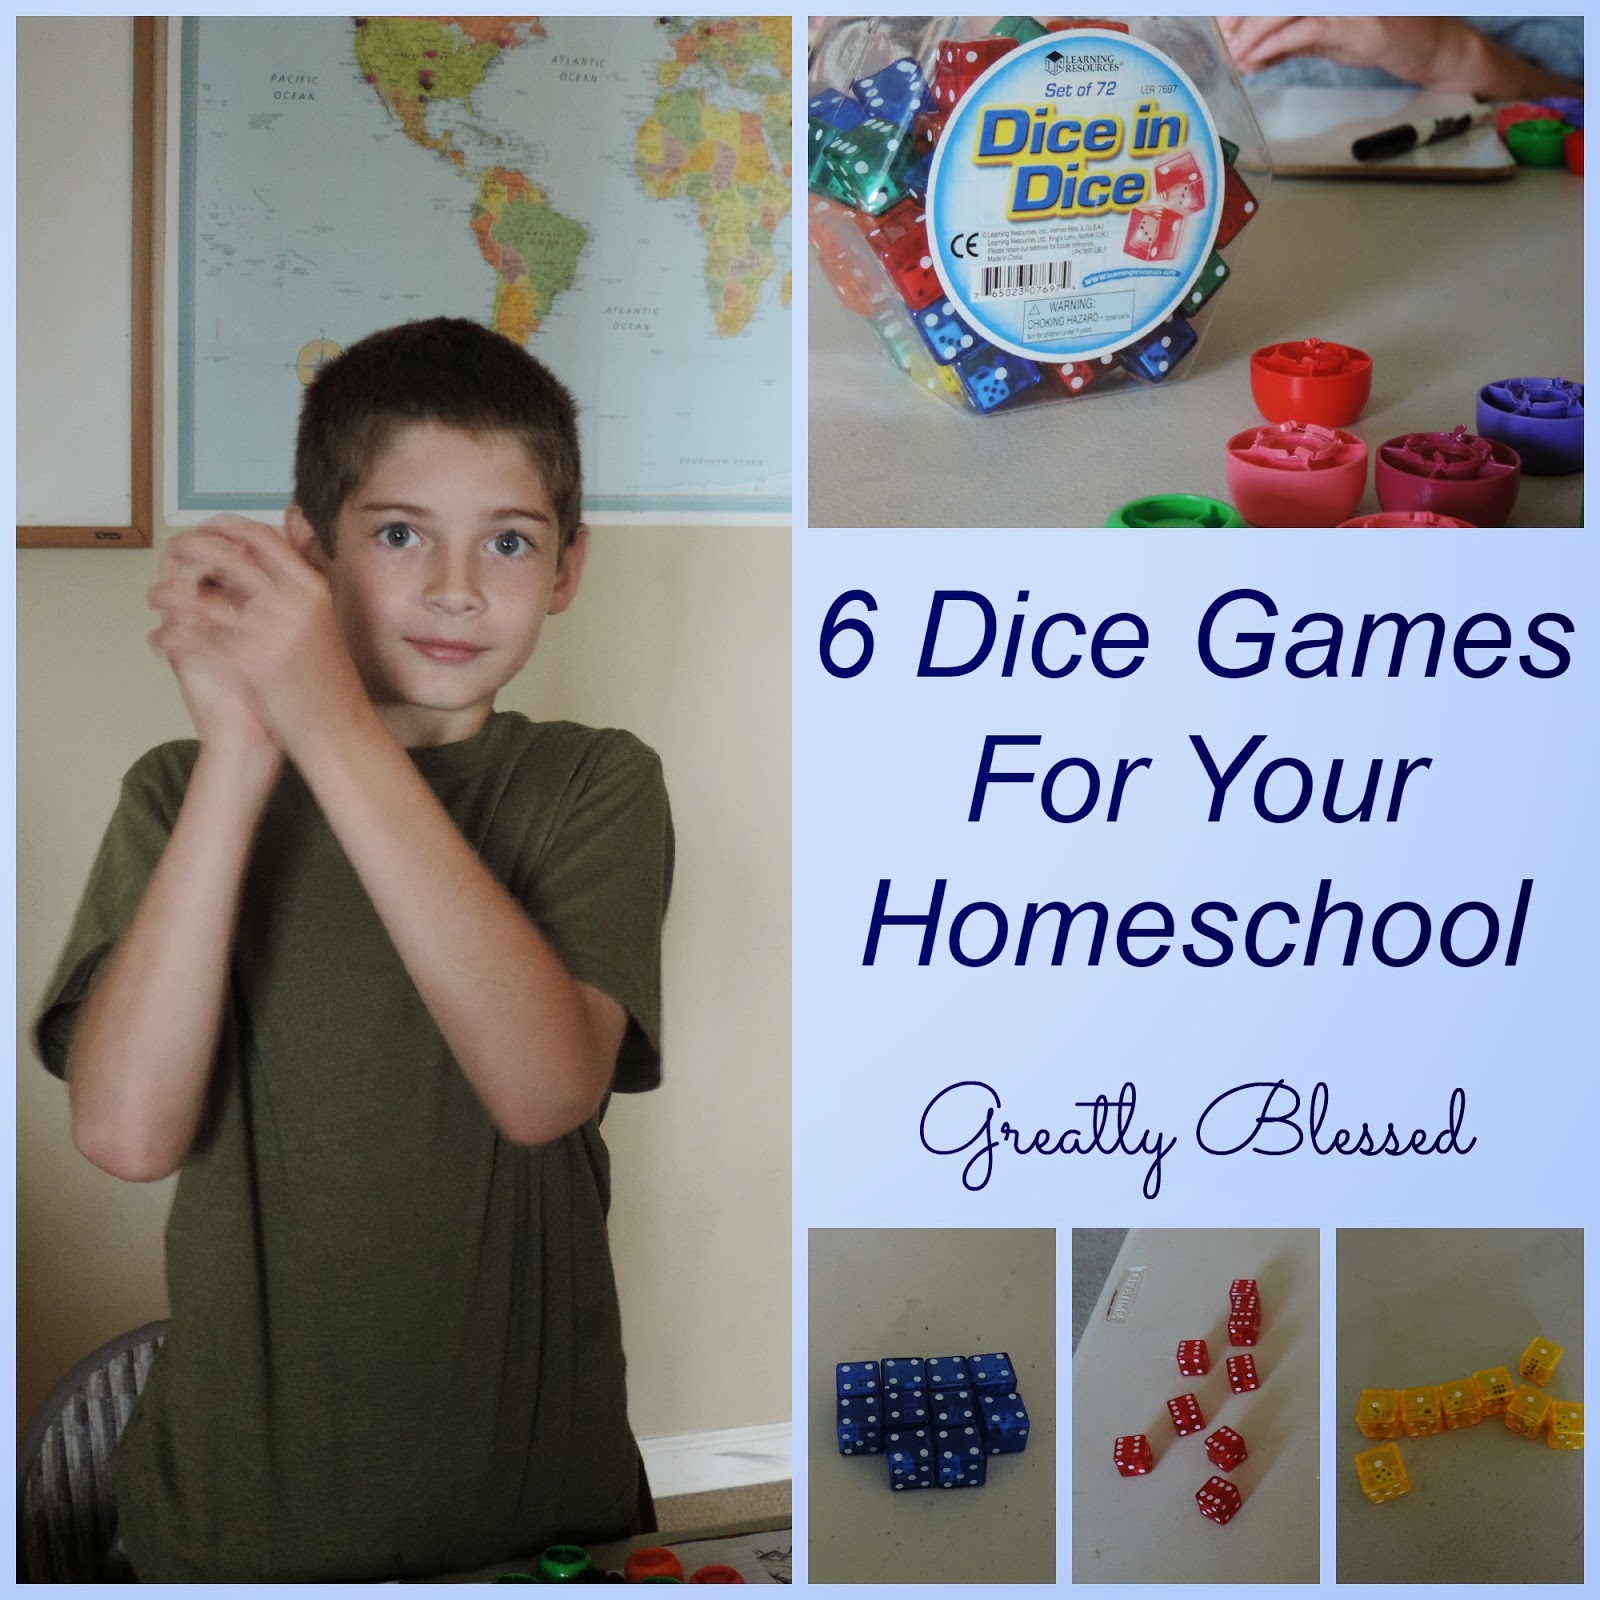 Greatly Blessed 6 Dice Games For Your Homeschool